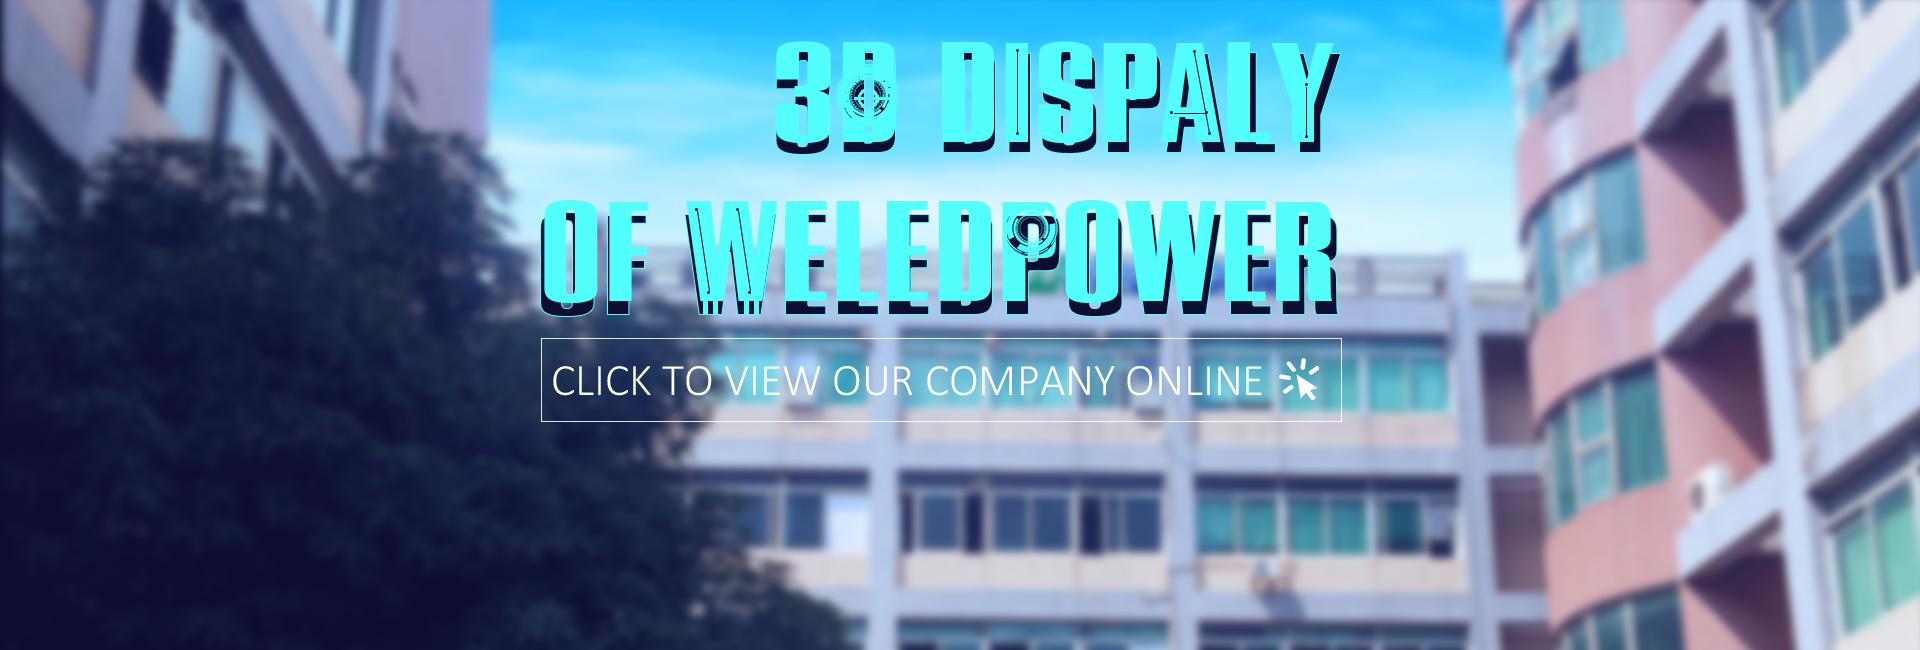 3D display of wledpower